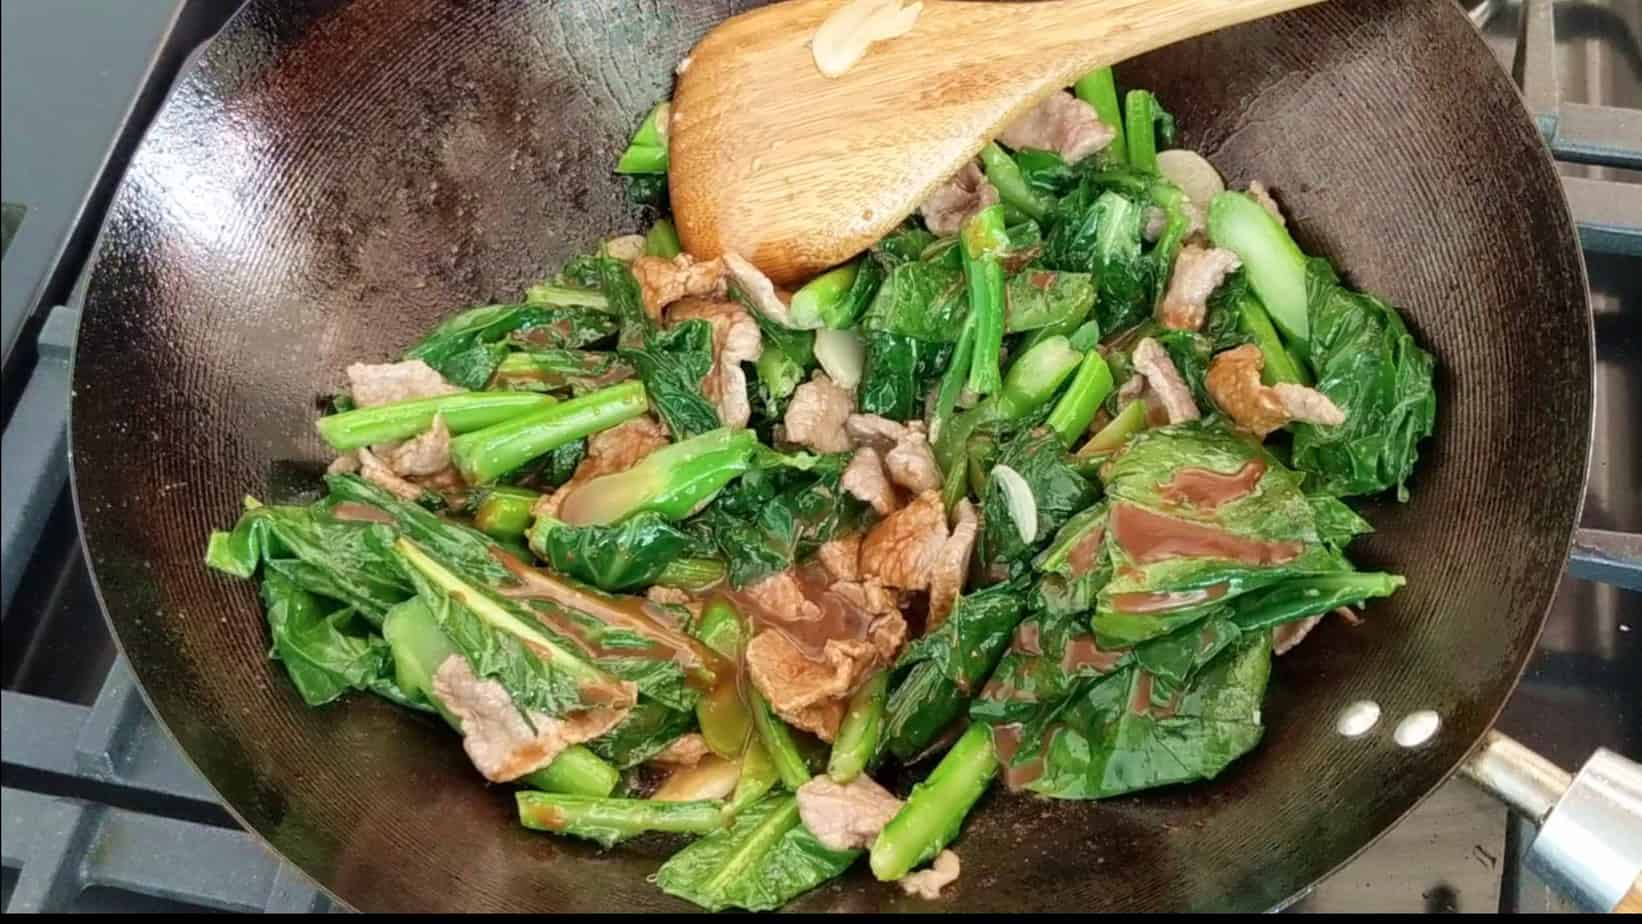 Beef & Chinese broccoli fried in a wok